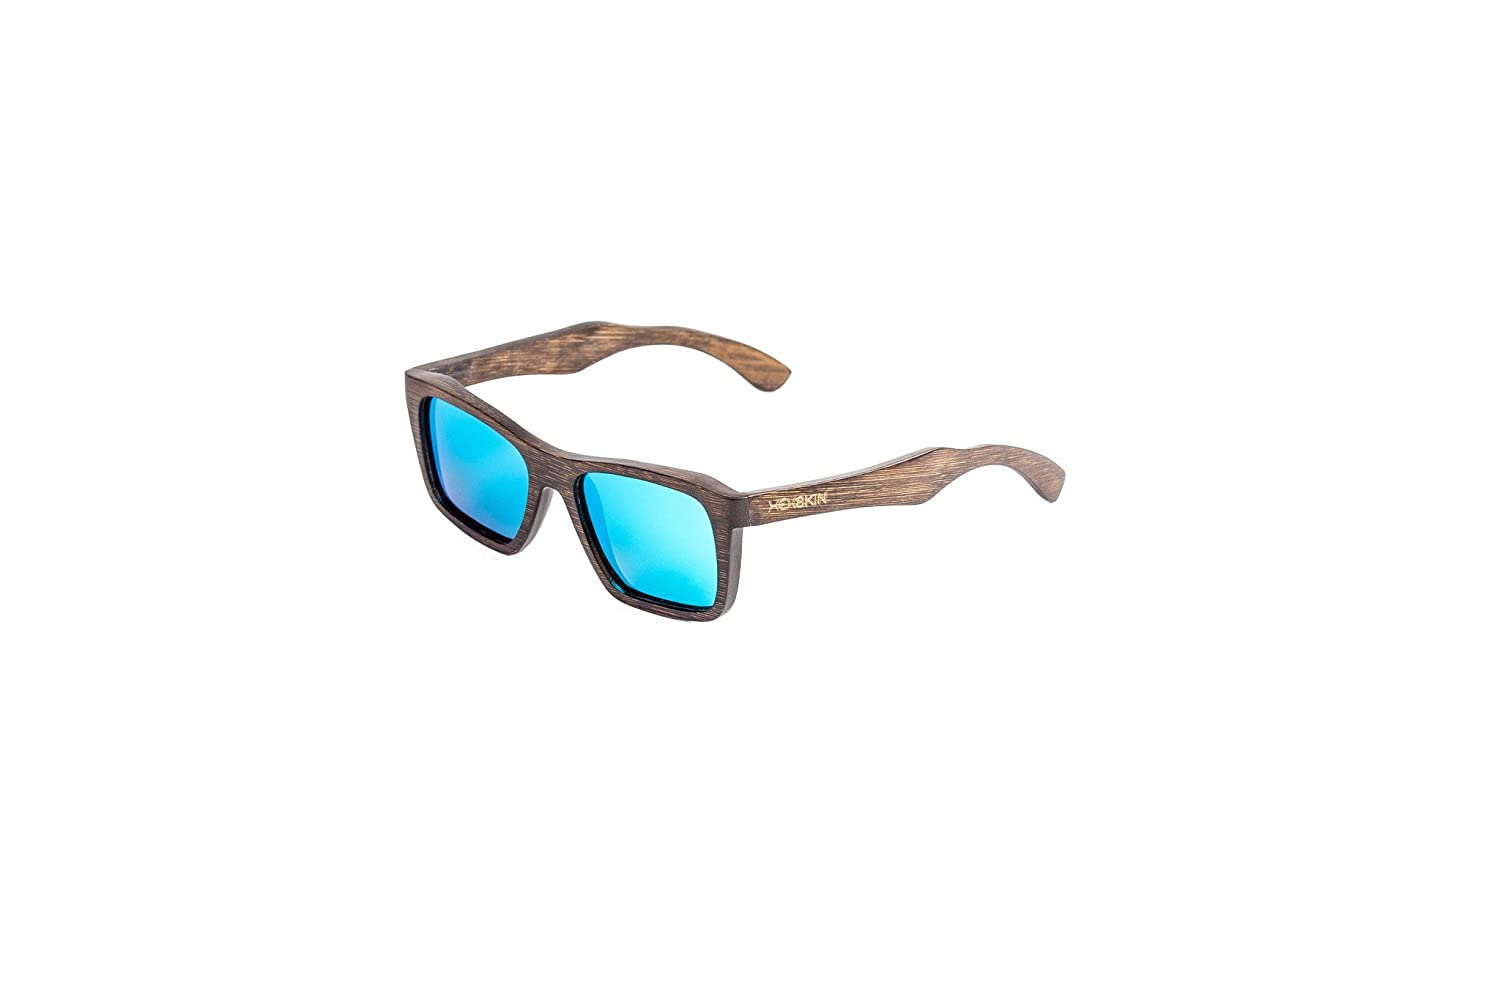 Amazon.com: ABACO POLARIZED FLOATING WOODEN SUNGLASSES ...